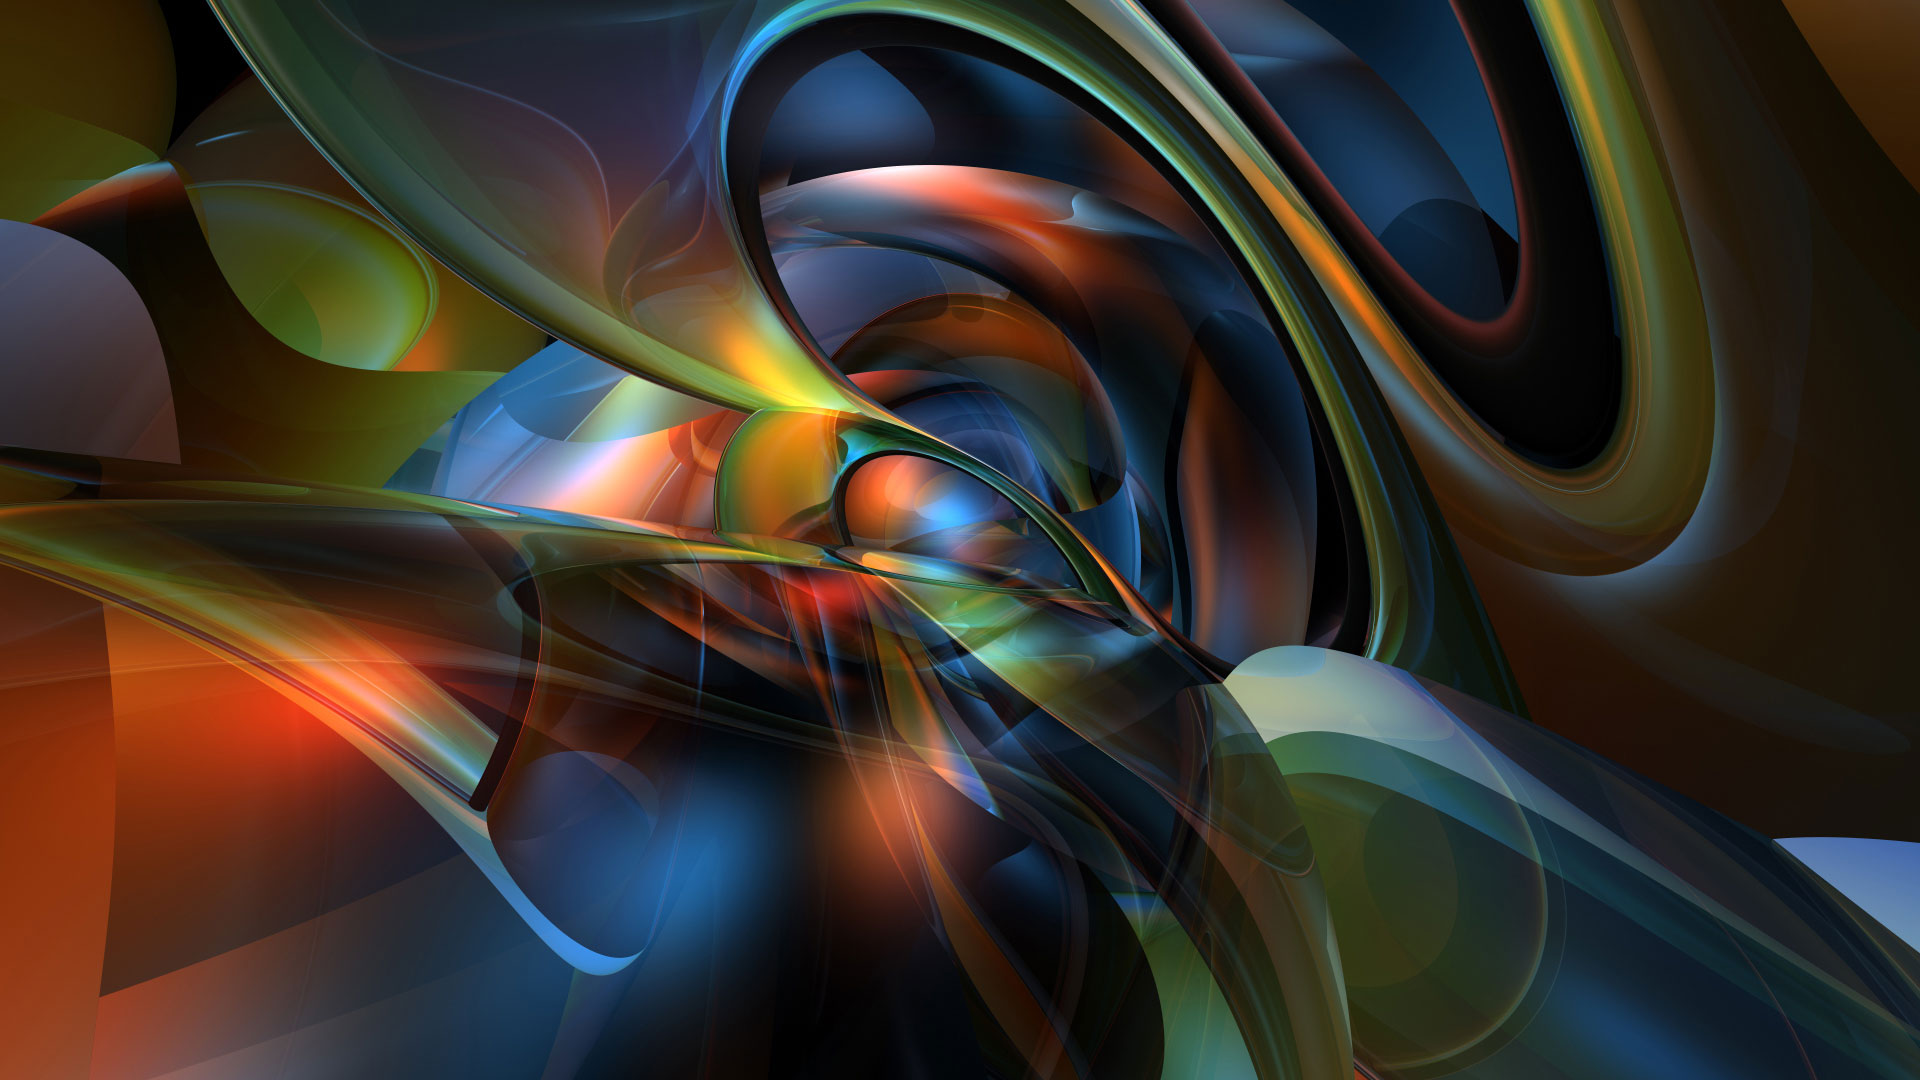 3d Abstract Wallpaper 9599 Hd Wallpapers in 3D   Imagescicom 1920x1080